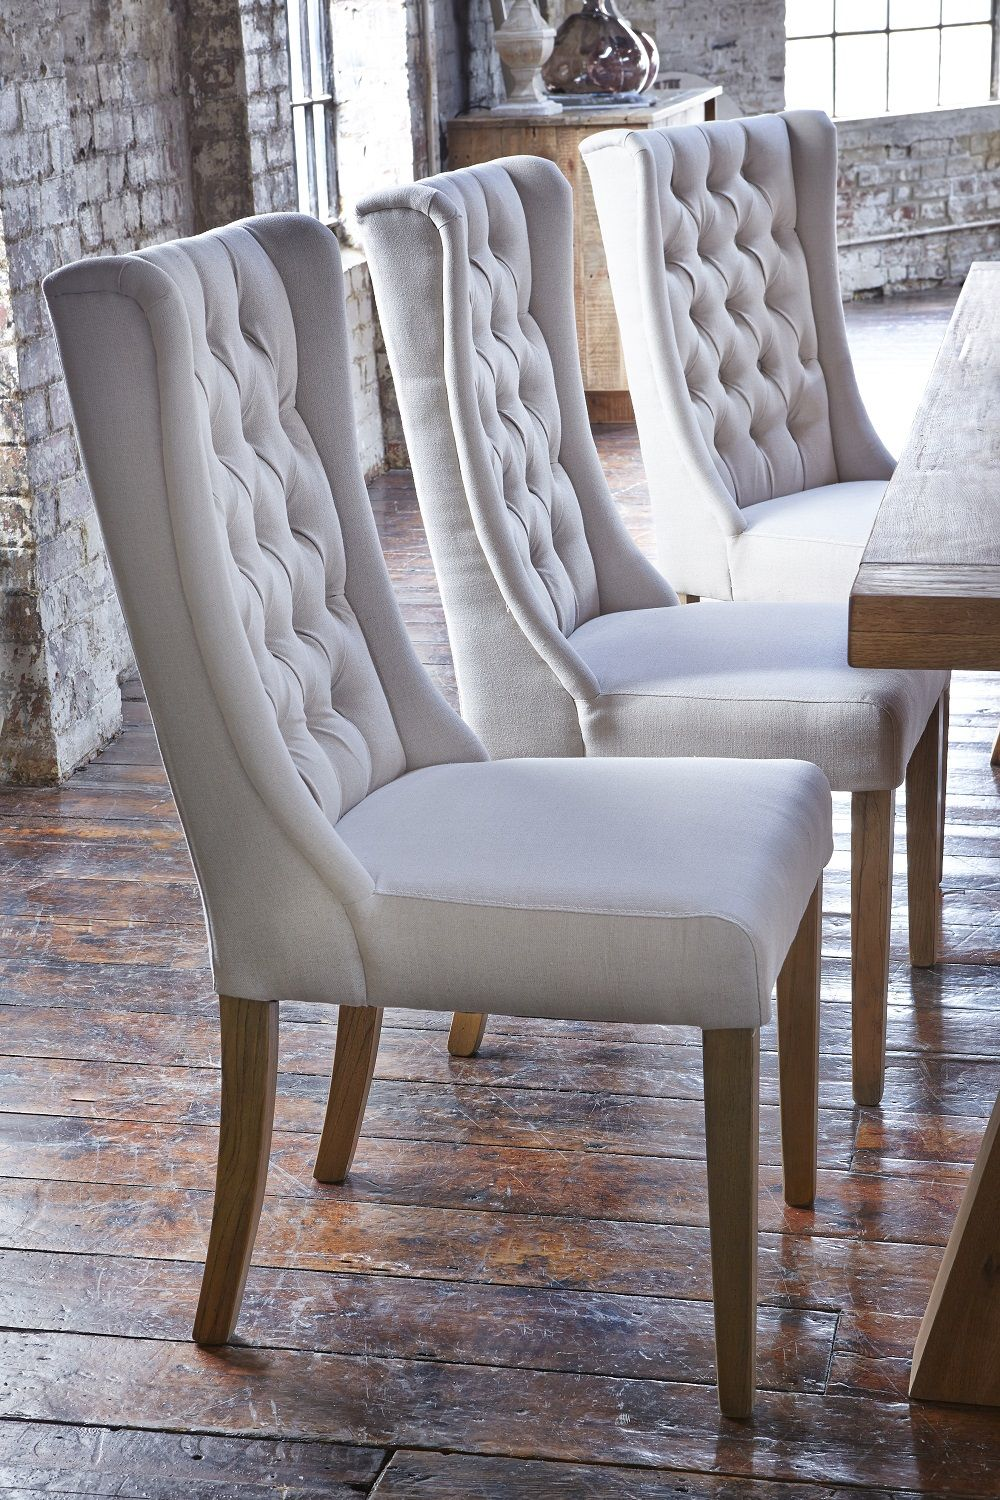 Cloth Dining Room Chairs Comfy Bar Upholstered Winged Will Give Your An Air Of Elegance We Love The Kipling Chair With Its Chic Curved Legs Click To Shop